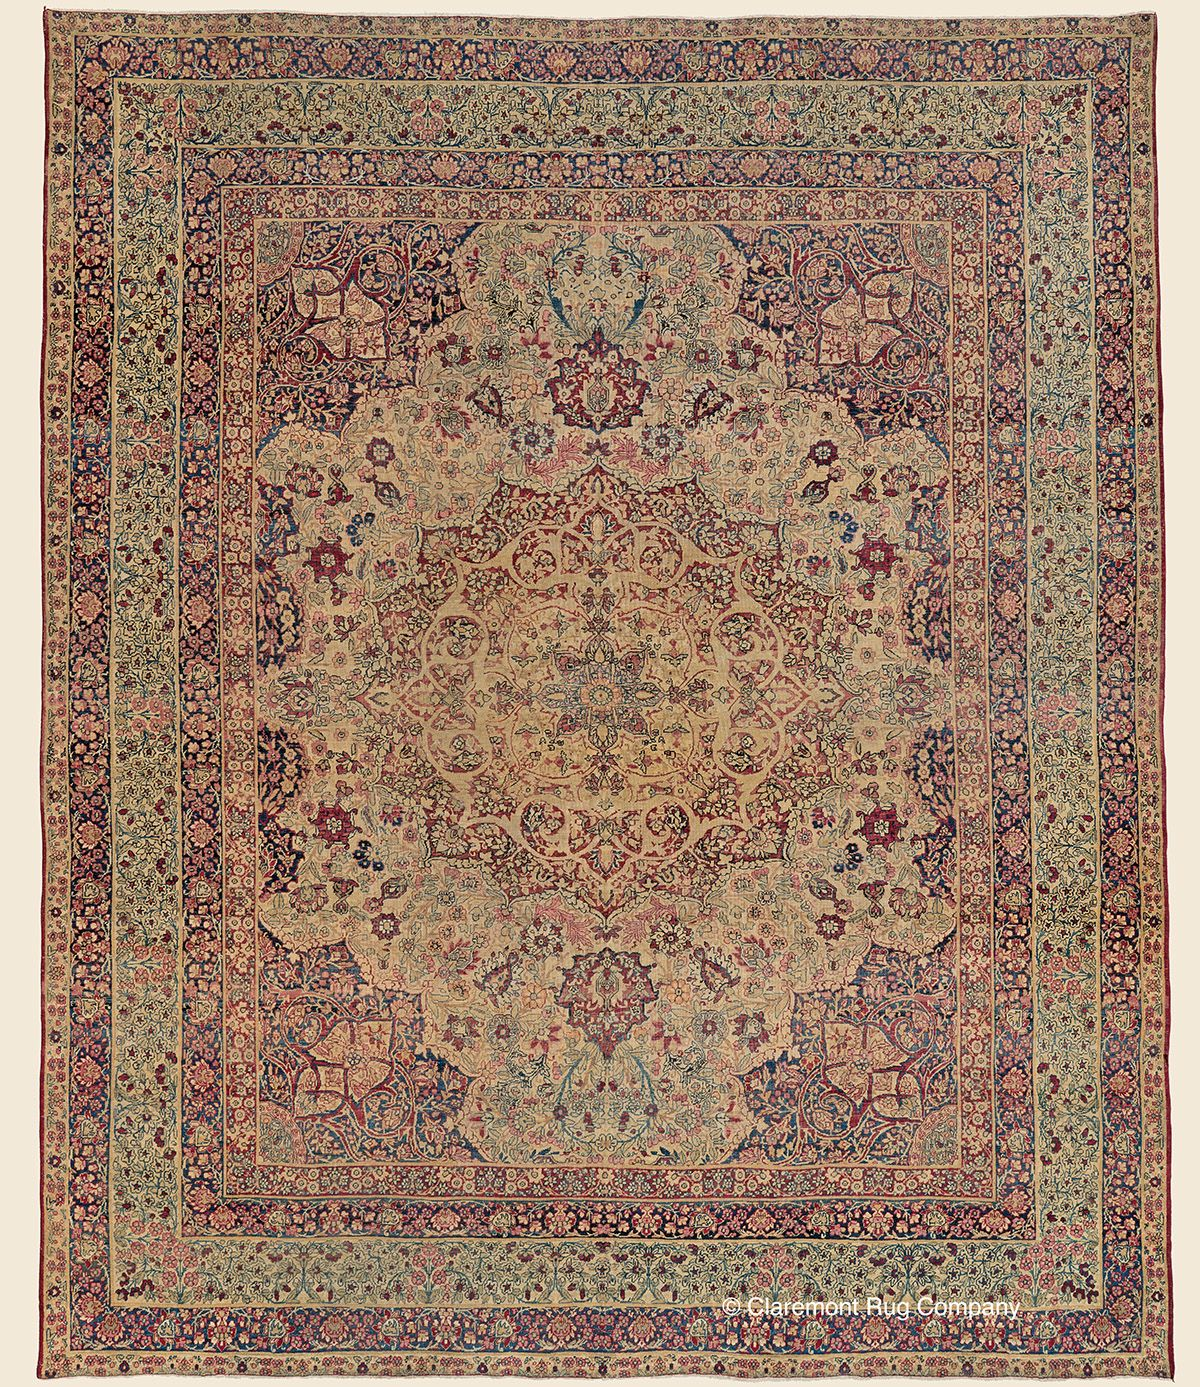 Laver Kirman 8 11 X 10 6 Circa 1850 Southeast Persian Antique Rug Claremont Rug Company Click To Learn Claremont Rug Company Rug Company Antique Rugs